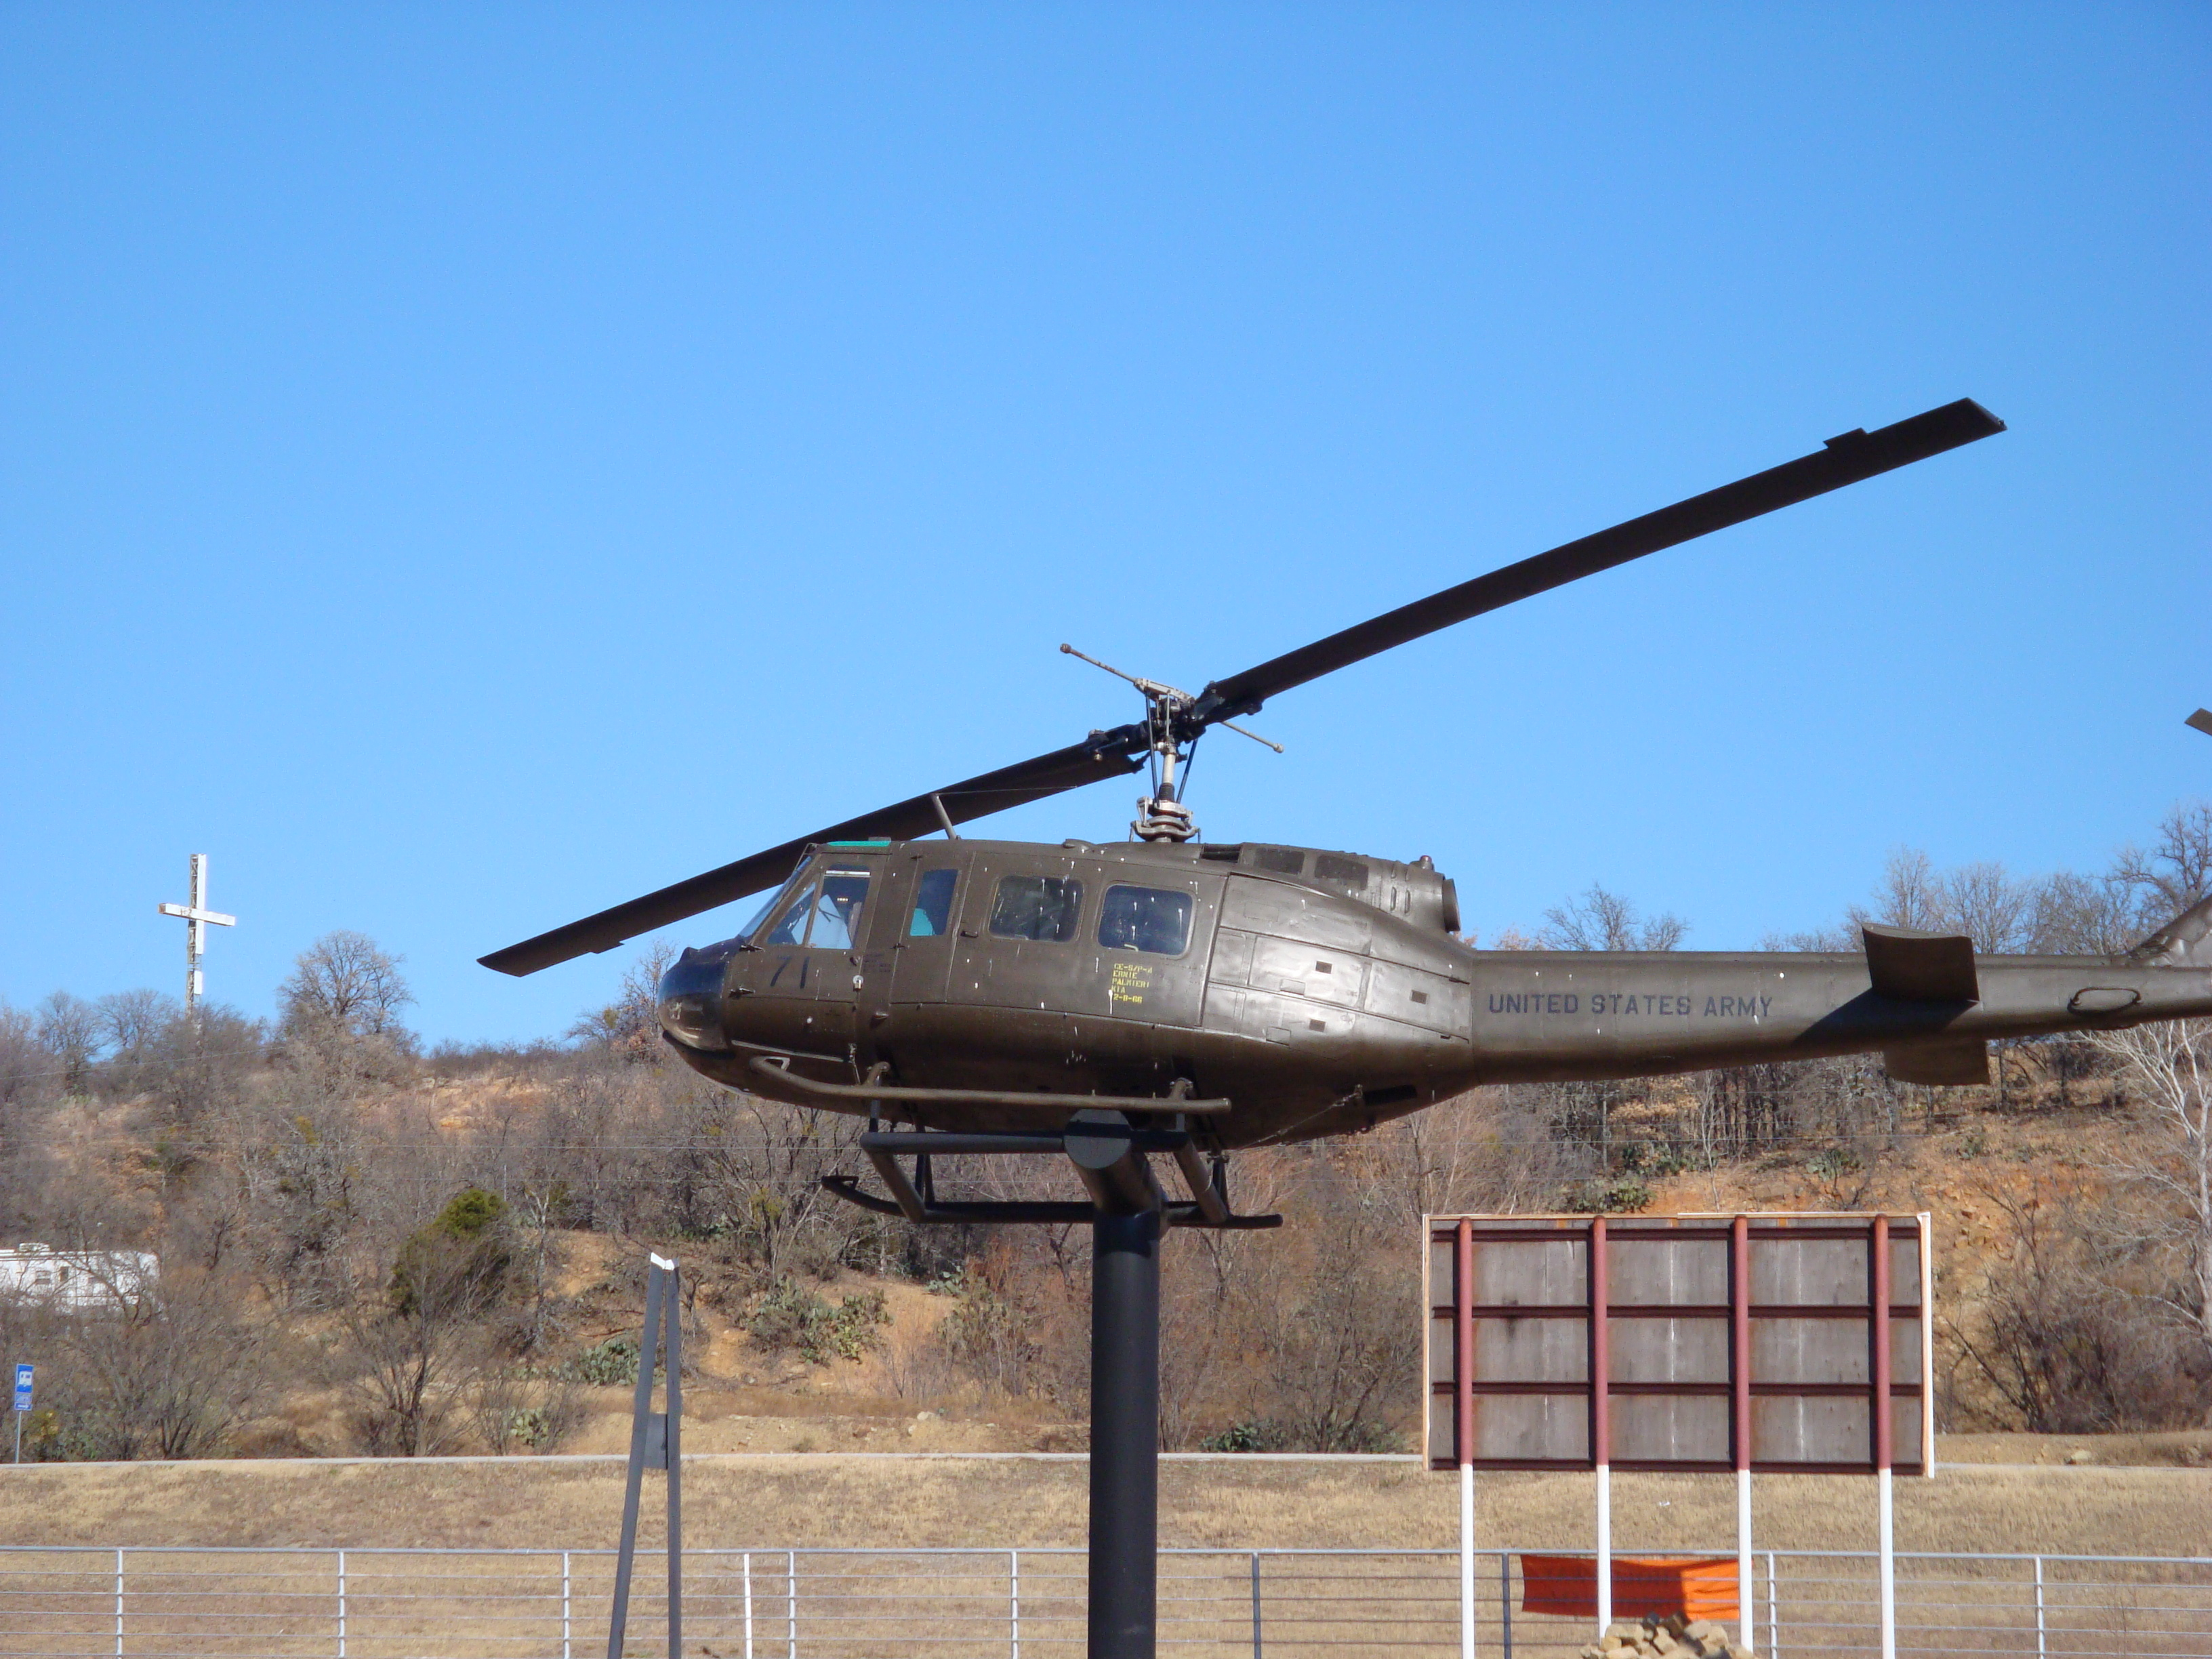 This is a Helicopter that was used during the Vietnam War.